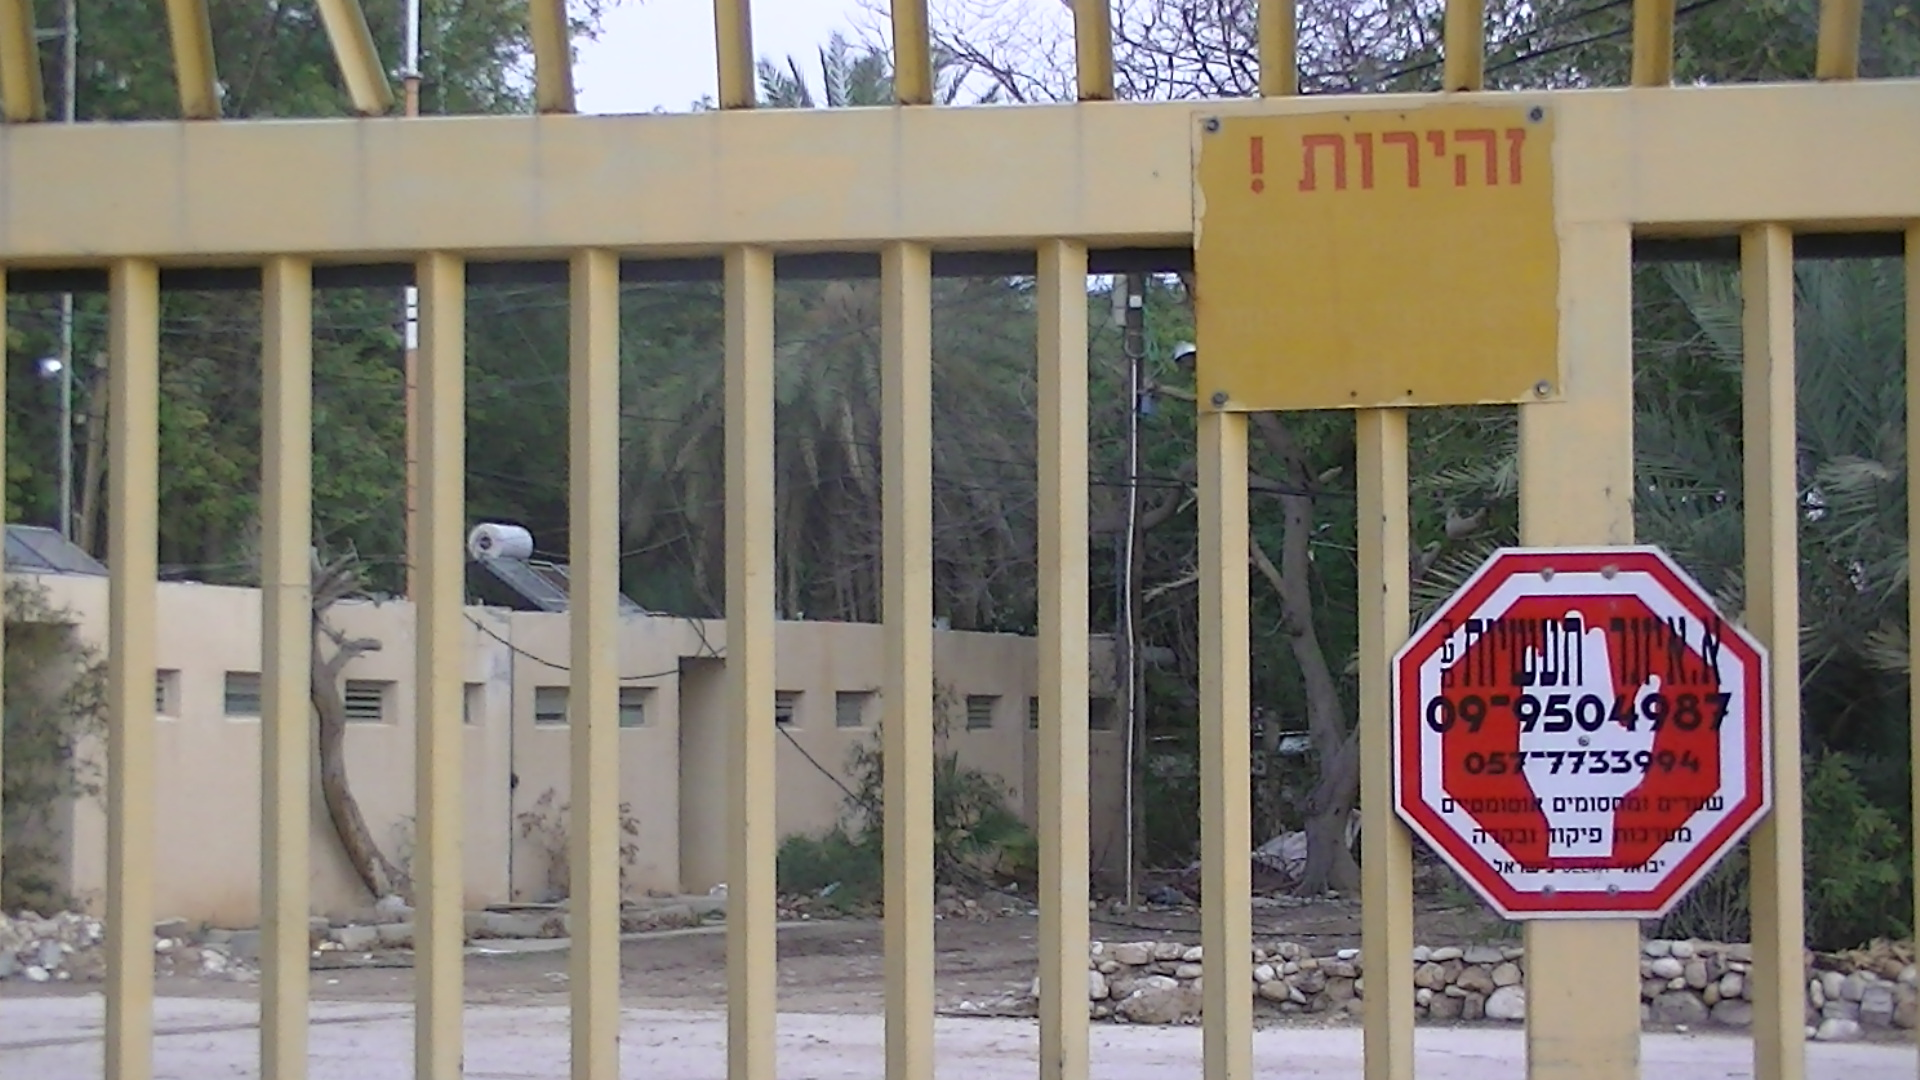 The gates of Beit Ha'Arava settlement, closed to Palestinians except settlement workers – photo taken by Corporate Watch, January 2013